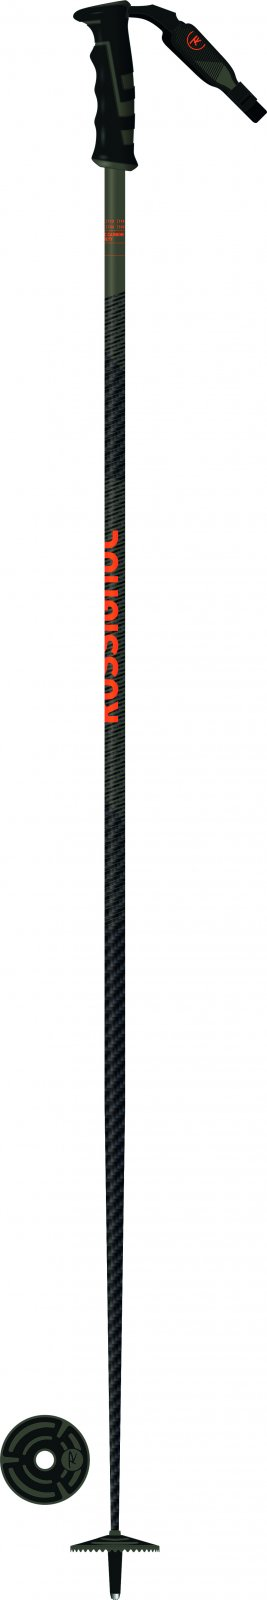 Rossignol Tactic Carbon 40 Safety Ski Poles 2020